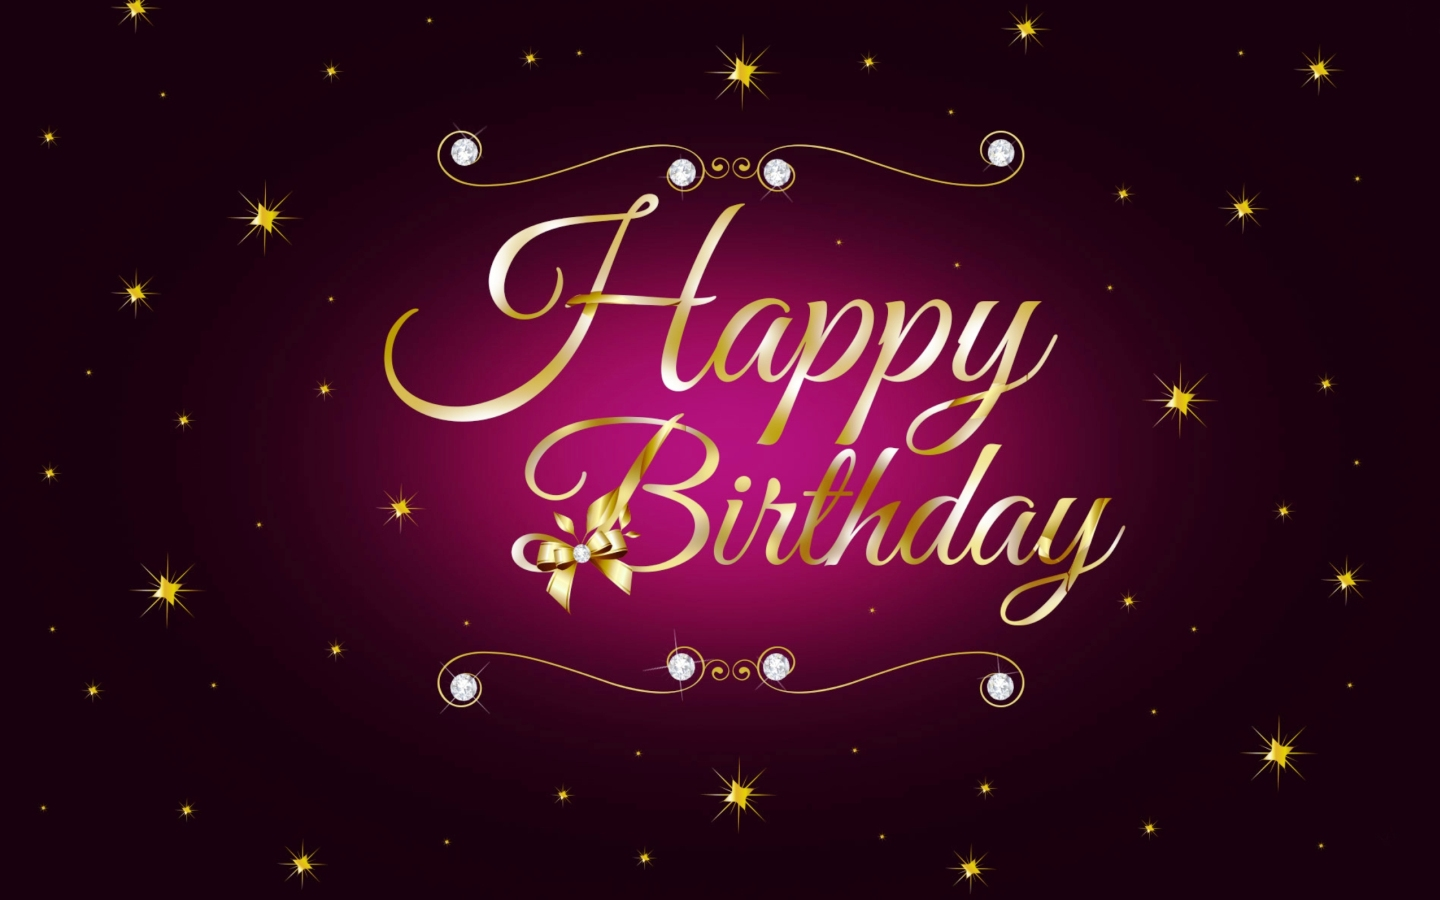 50 Happy Birthday Wishes To Help You Find The Right Words Wishes